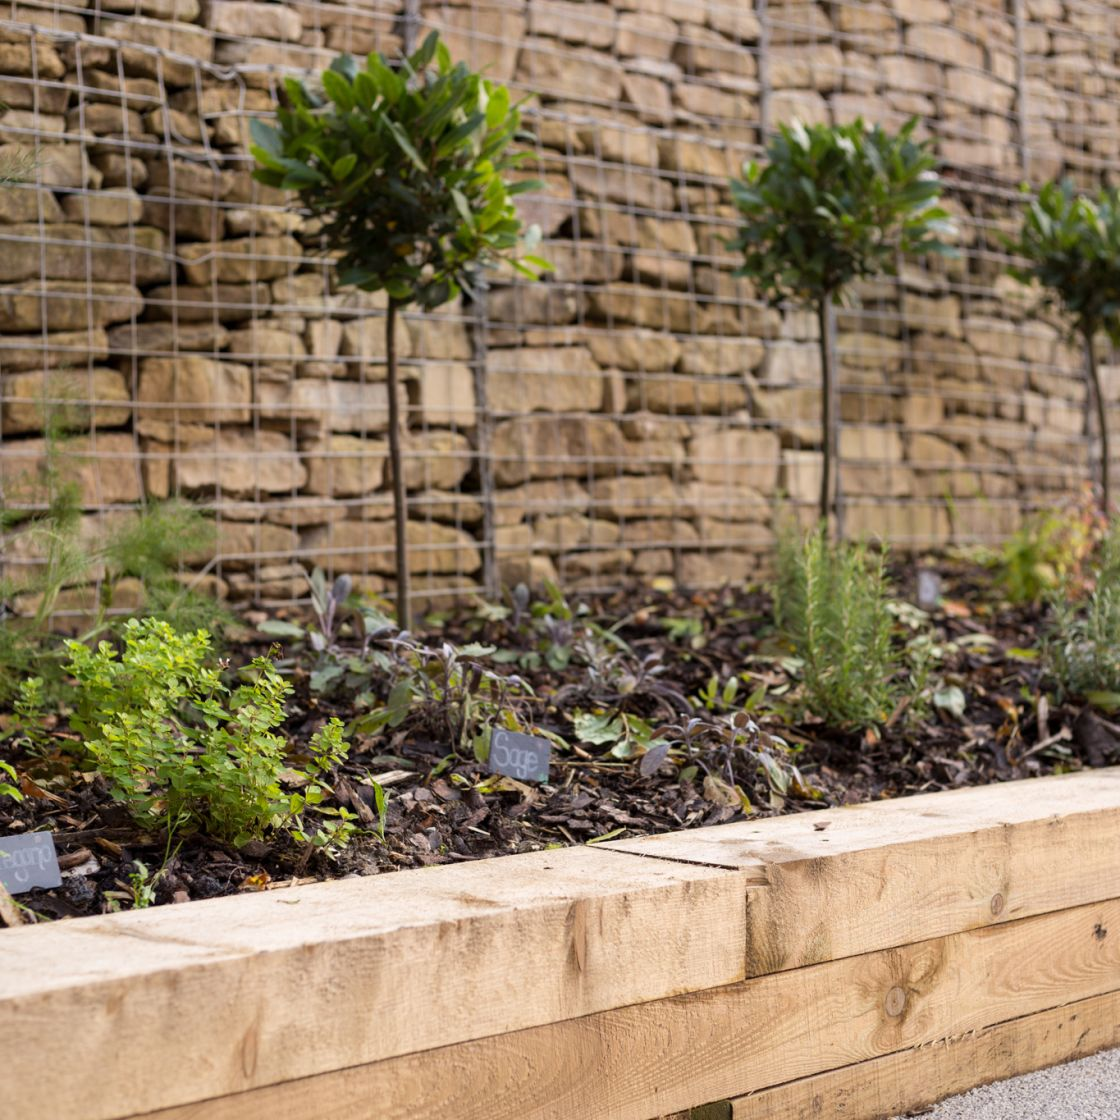 Outdoor herb garden at IconInc, The Glassworks. Student Accommodation in Leeds